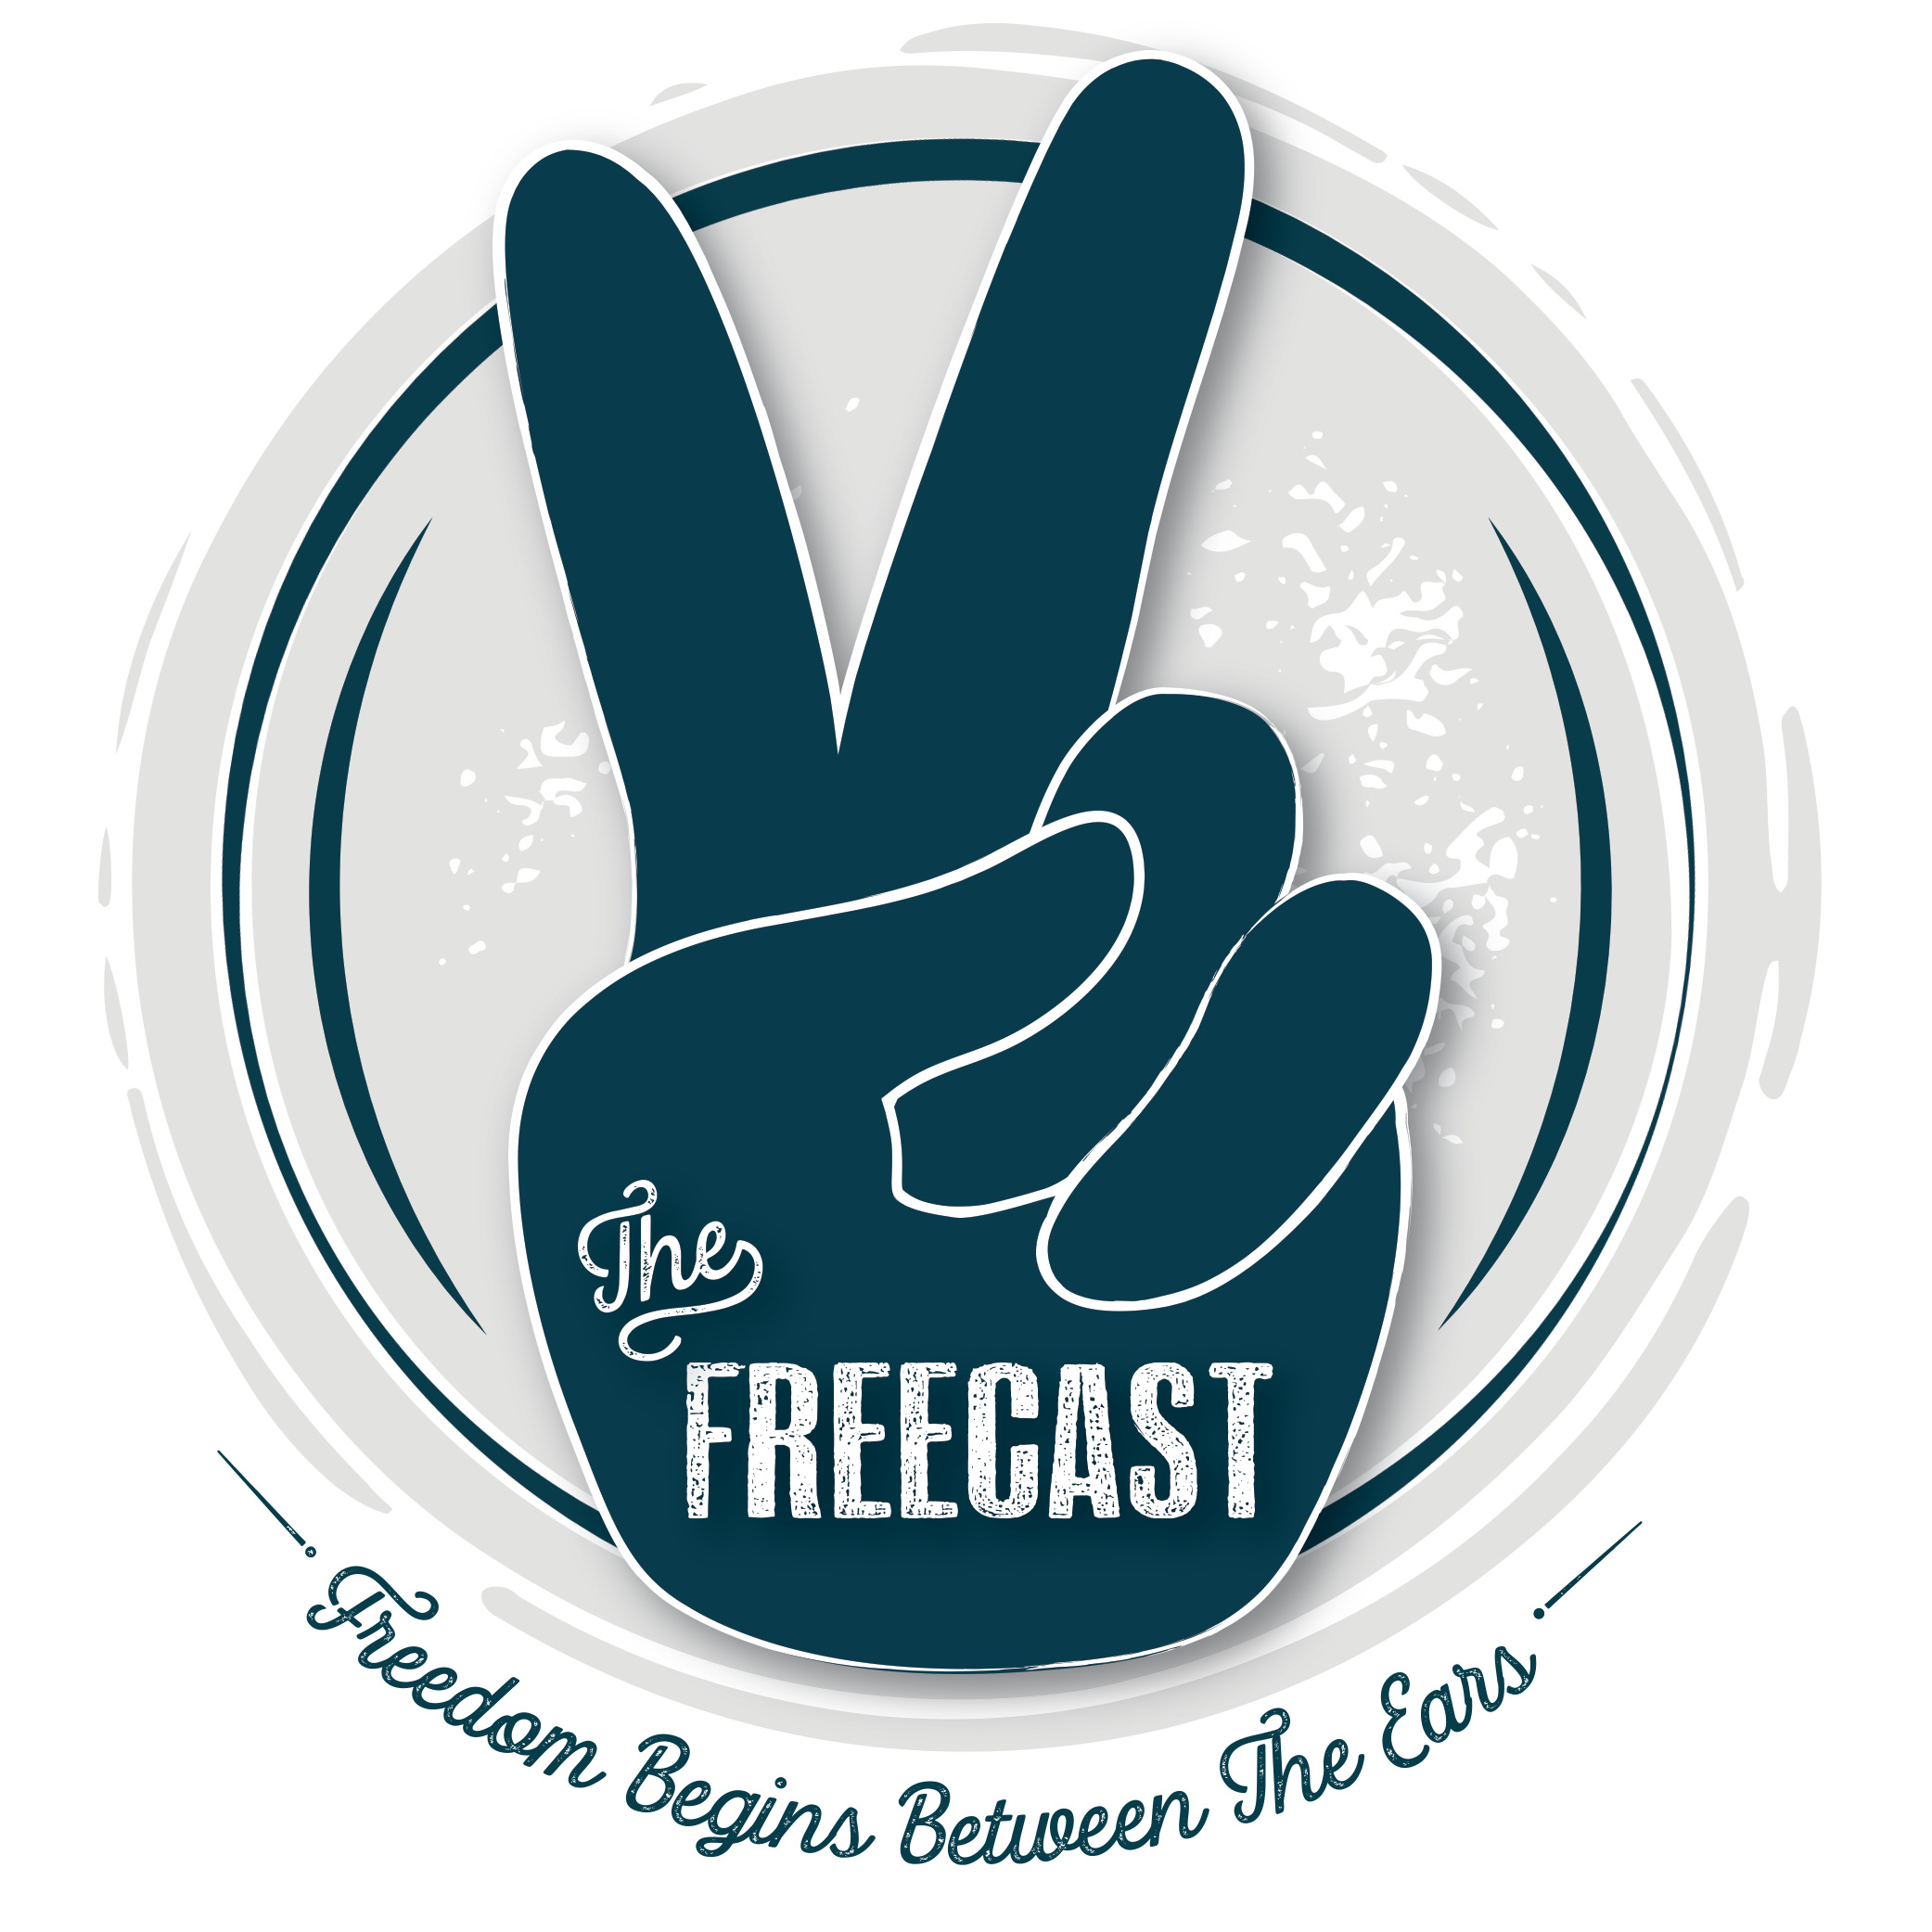 The Freecast logo